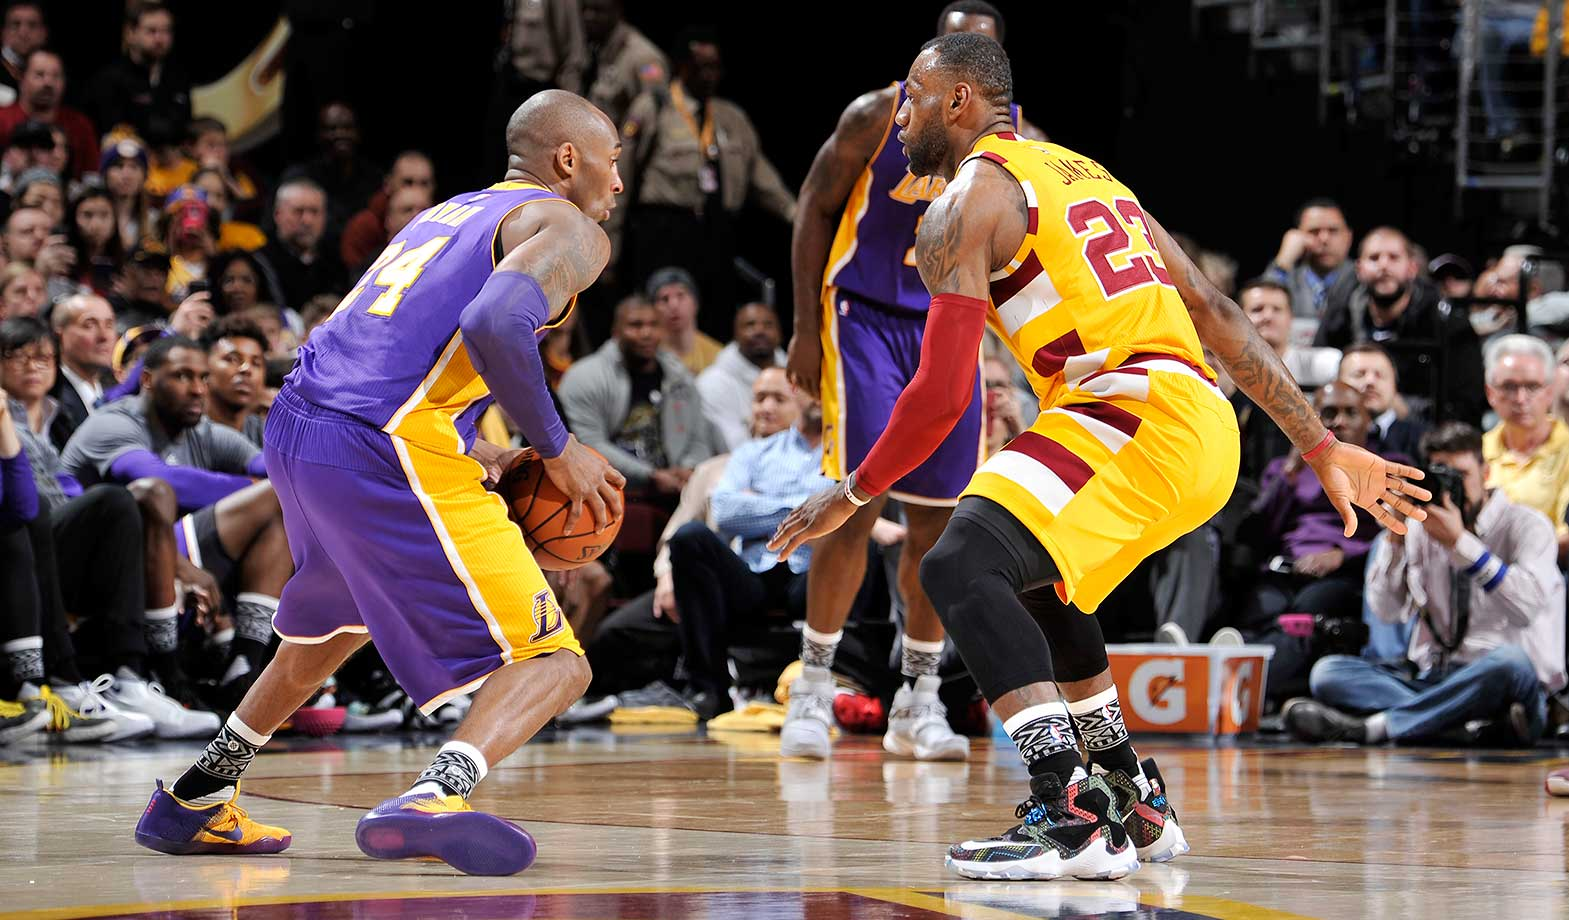 Kobe Bryant handles the ball against LeBron James at Quicken Loans Arena in Cleveland, Ohio.